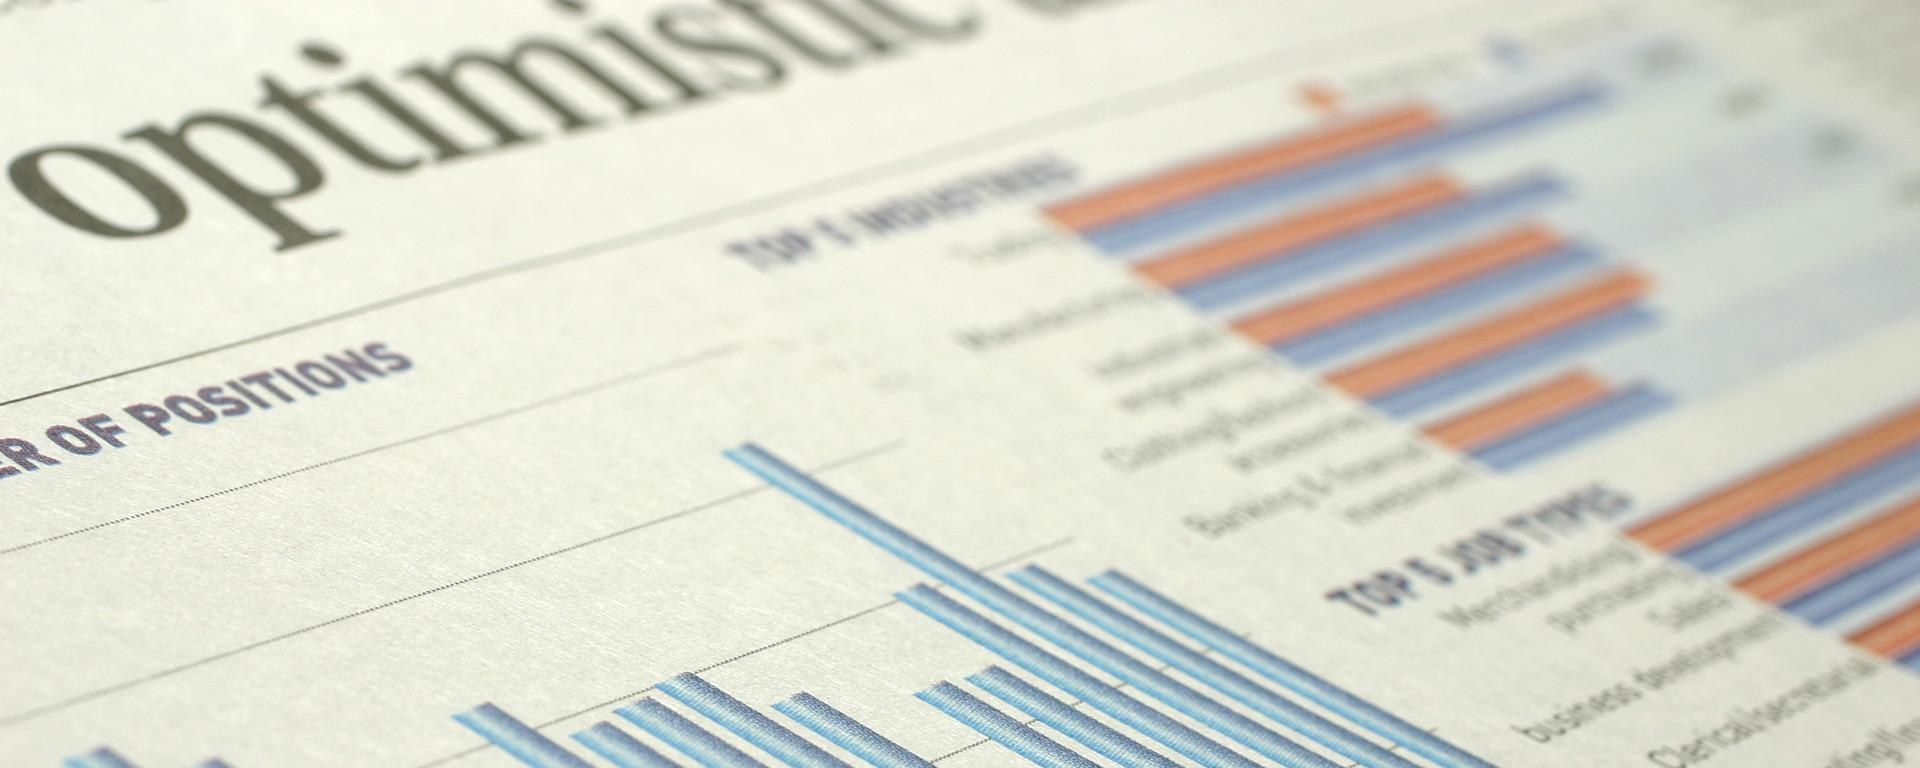 How to Read the Financial News Thumbnail